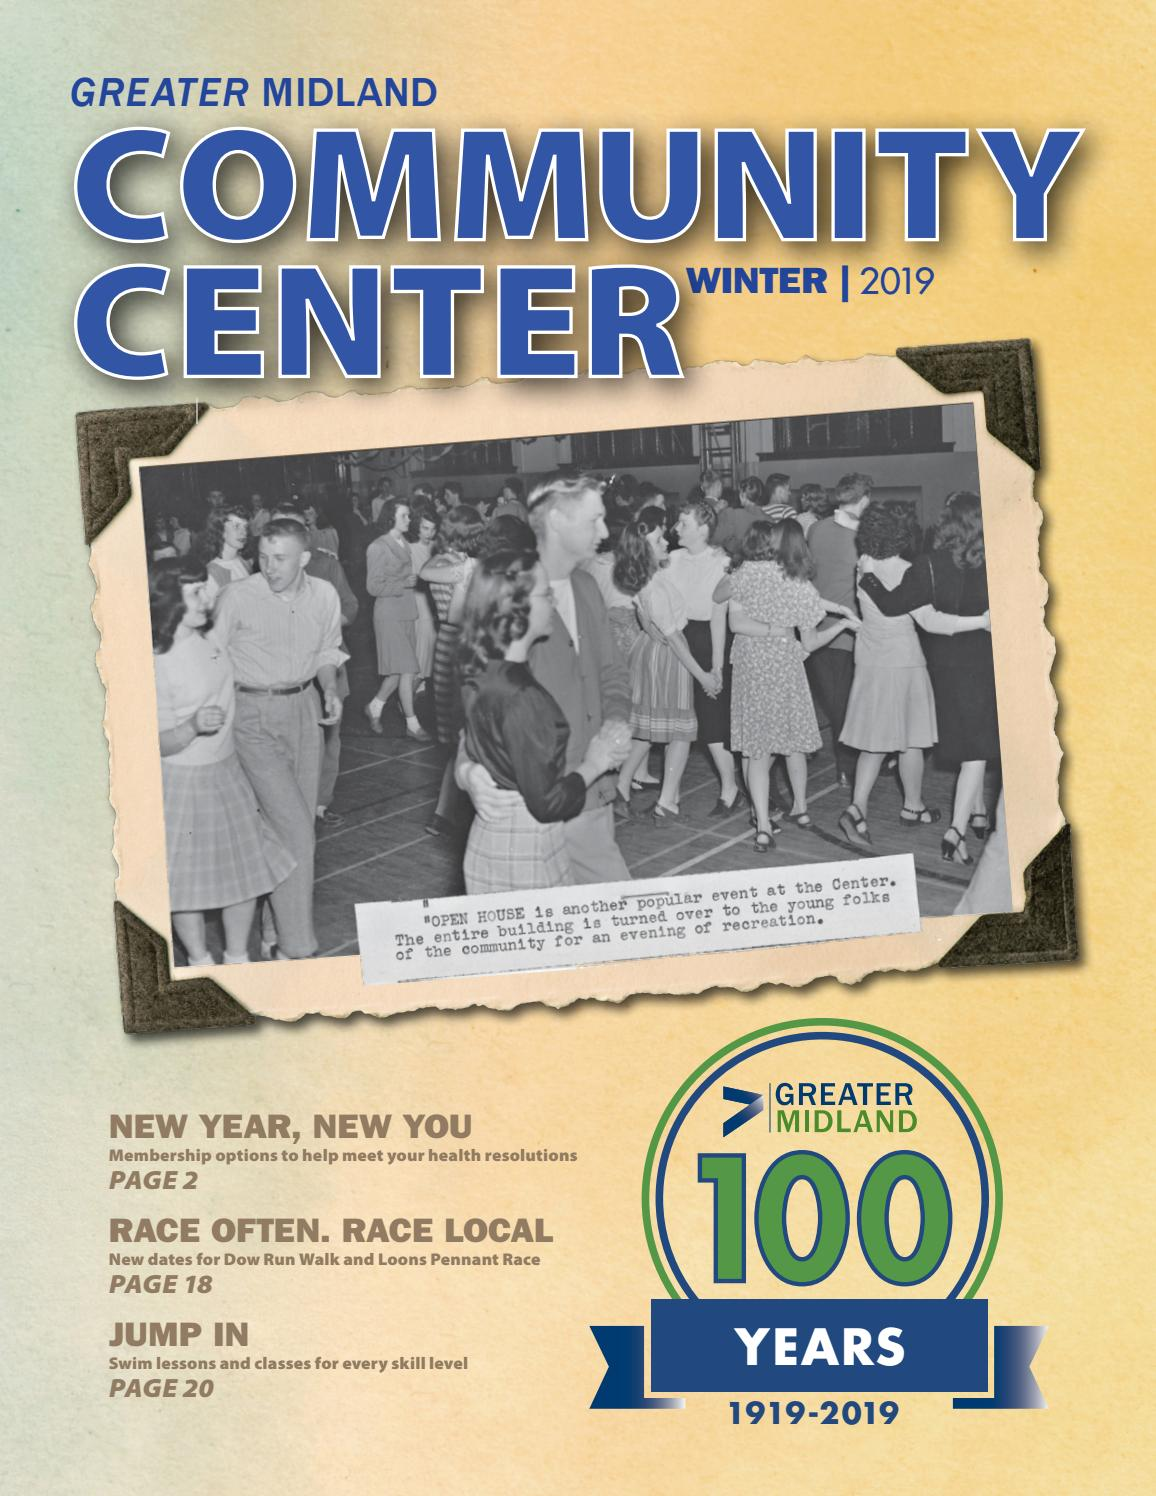 Greater Midland Community Center Winter 2019 Brochure by